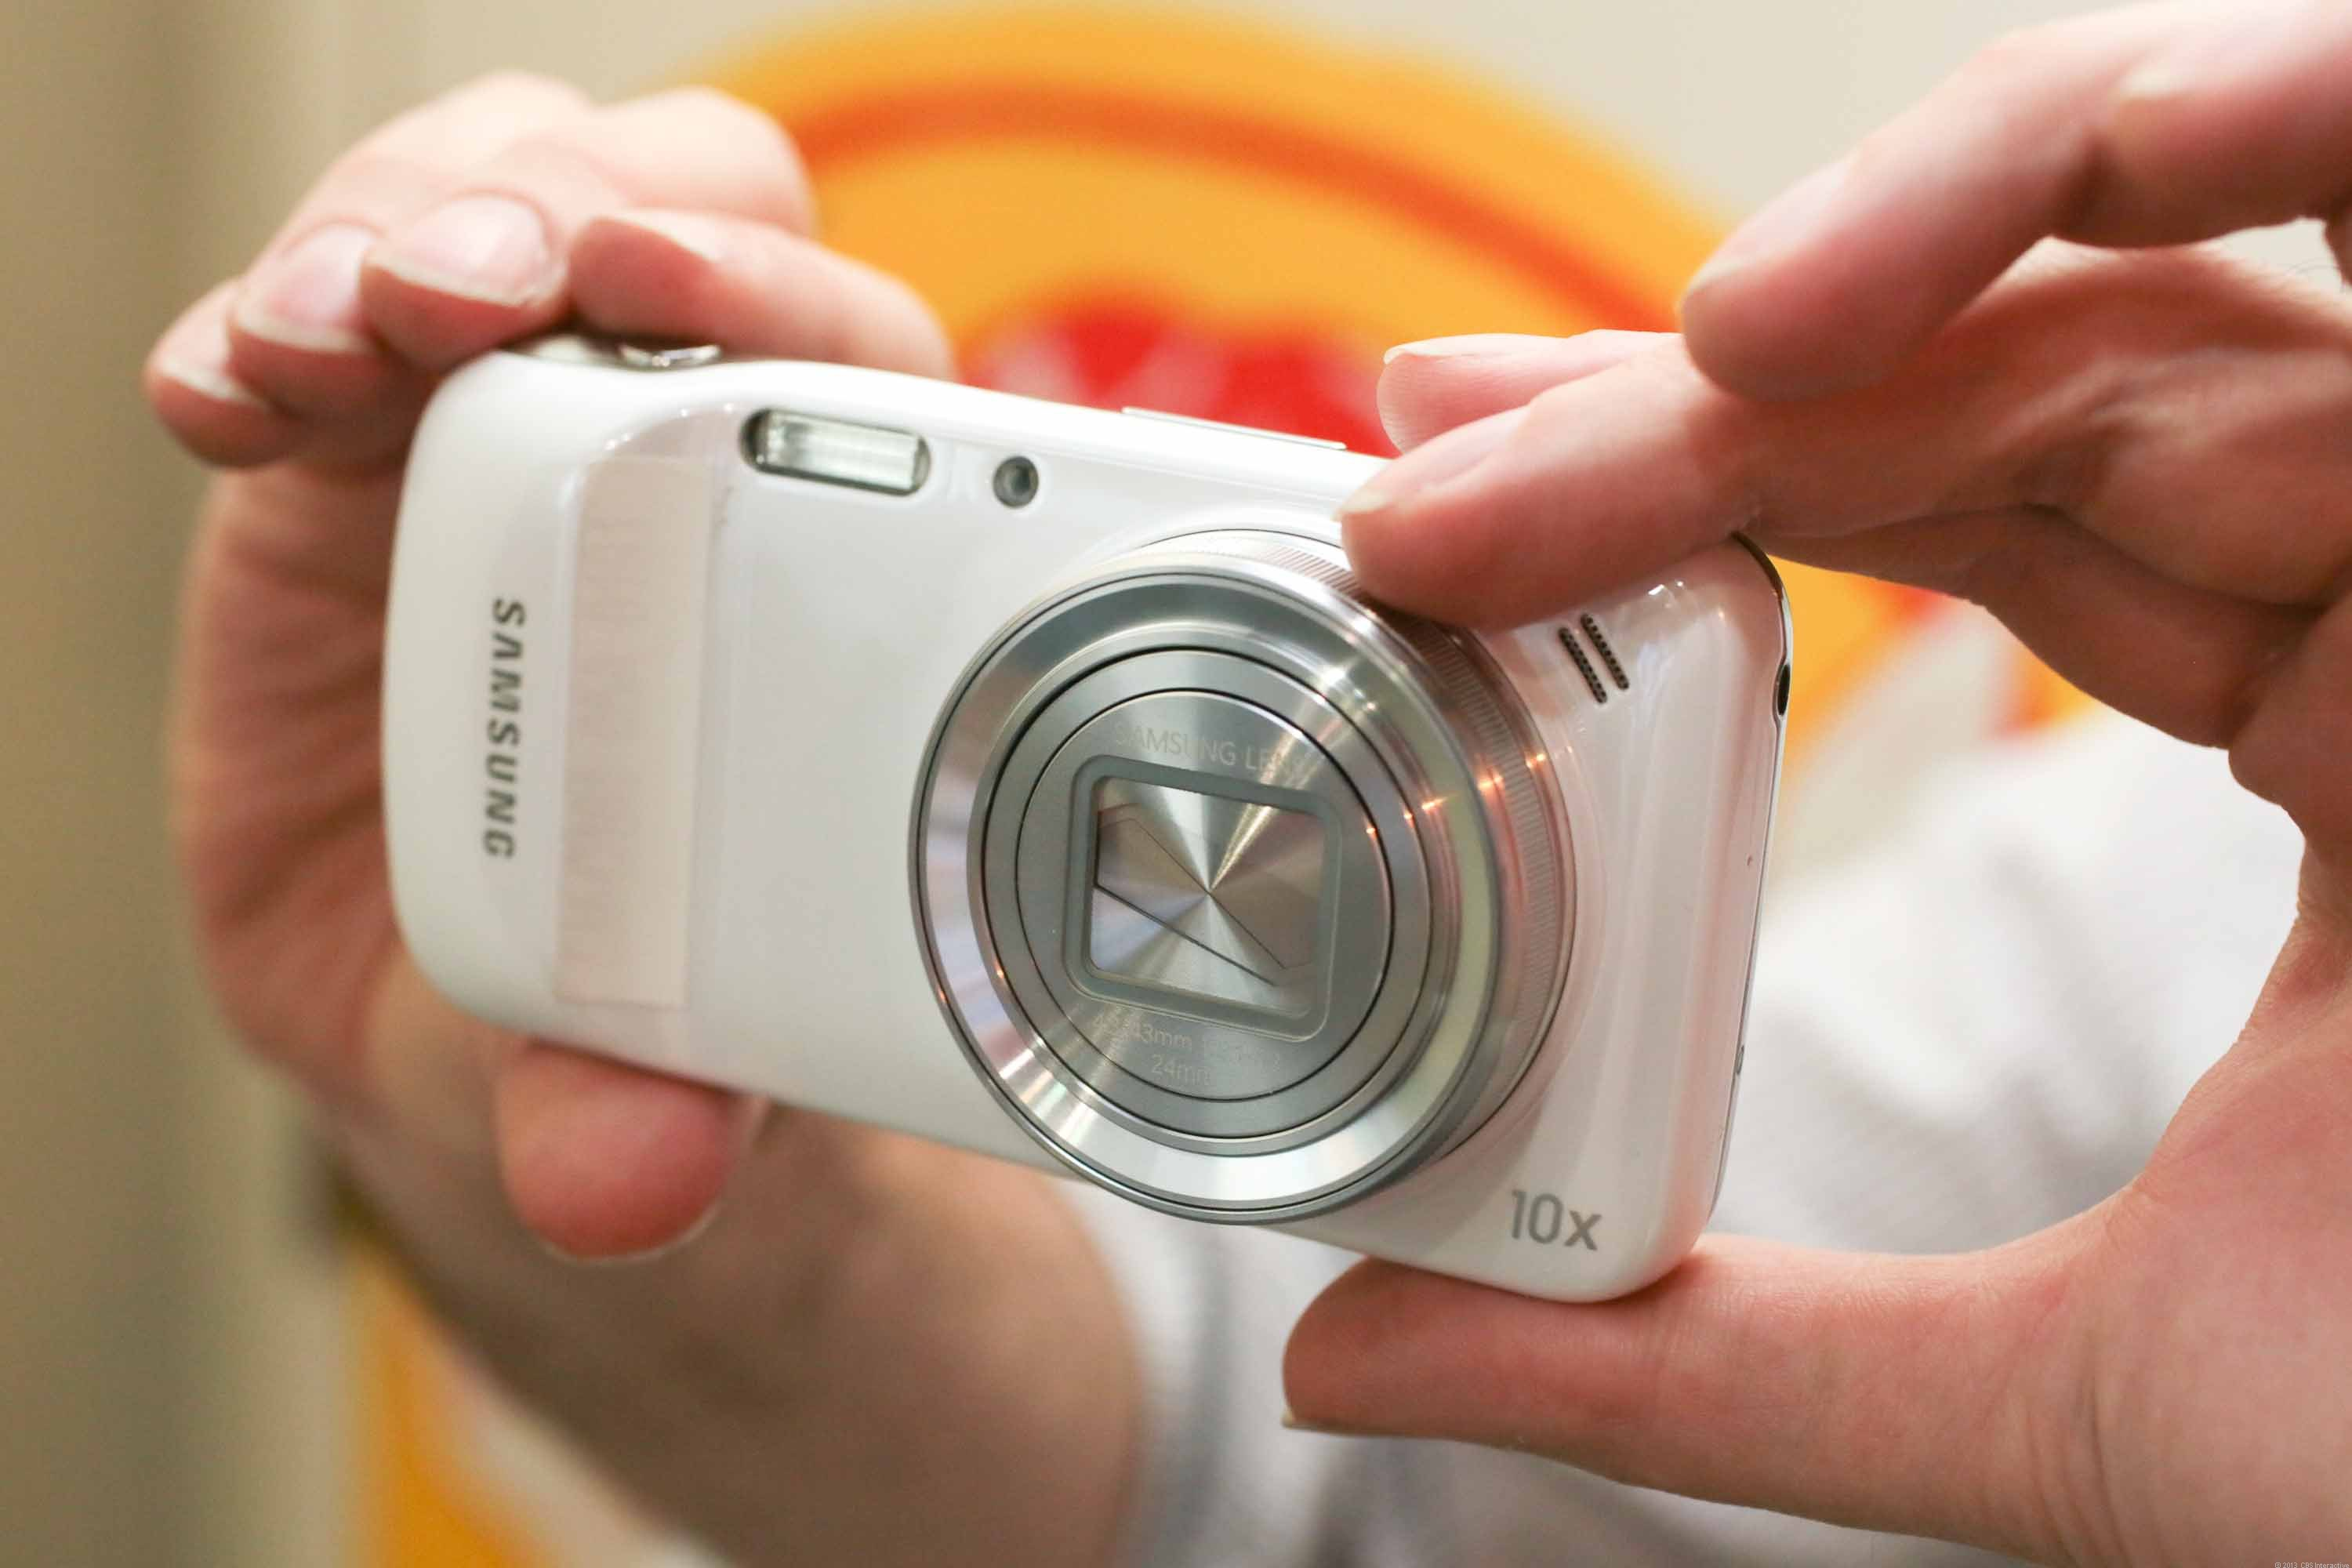 The Galaxy S4 Zoom runs Android 4.2 and has a 4.3-inch touch screen.